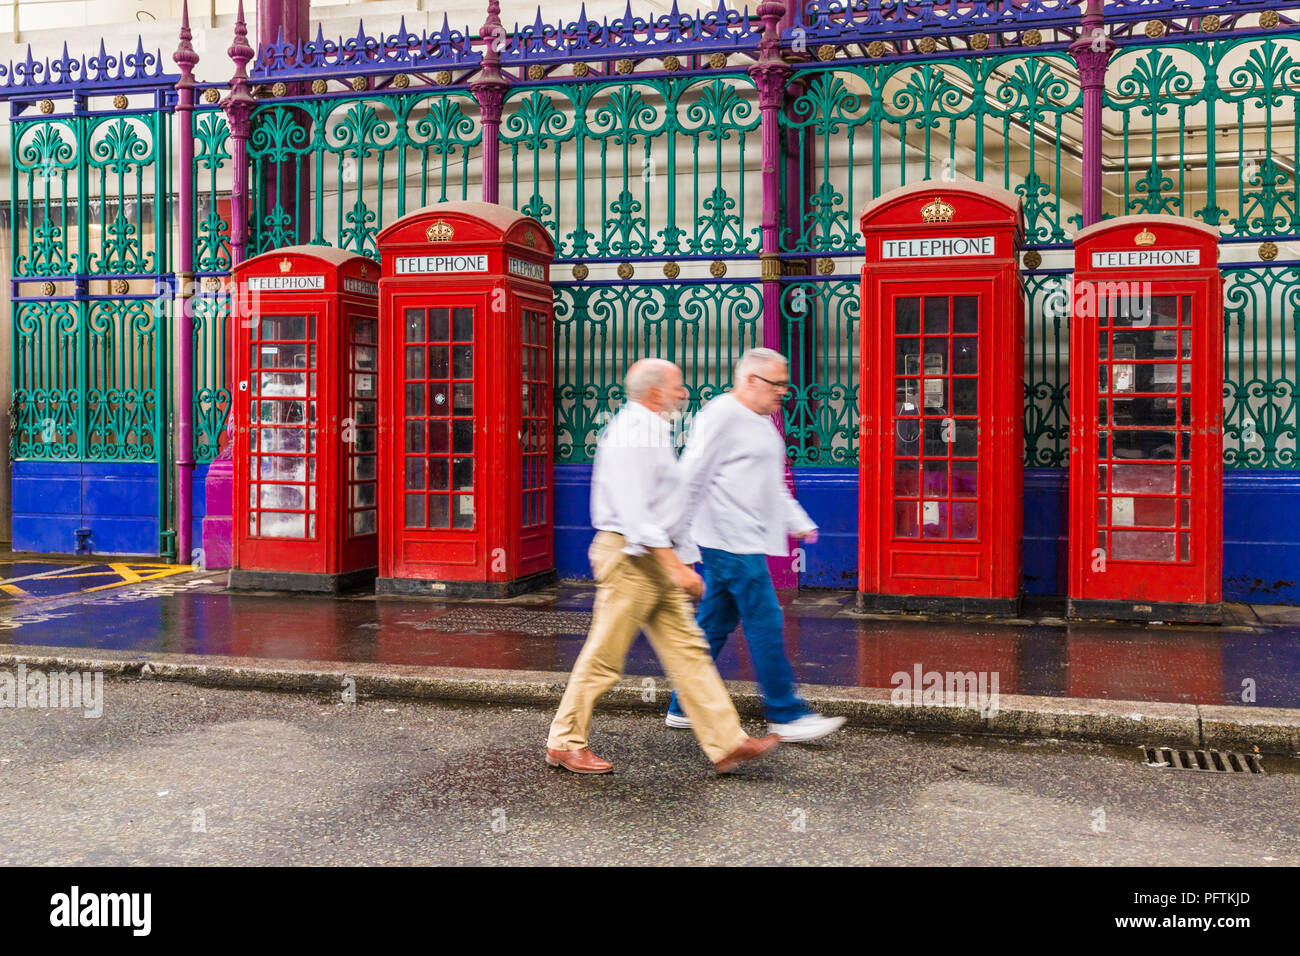 A typical view in central London uk - Stock Image